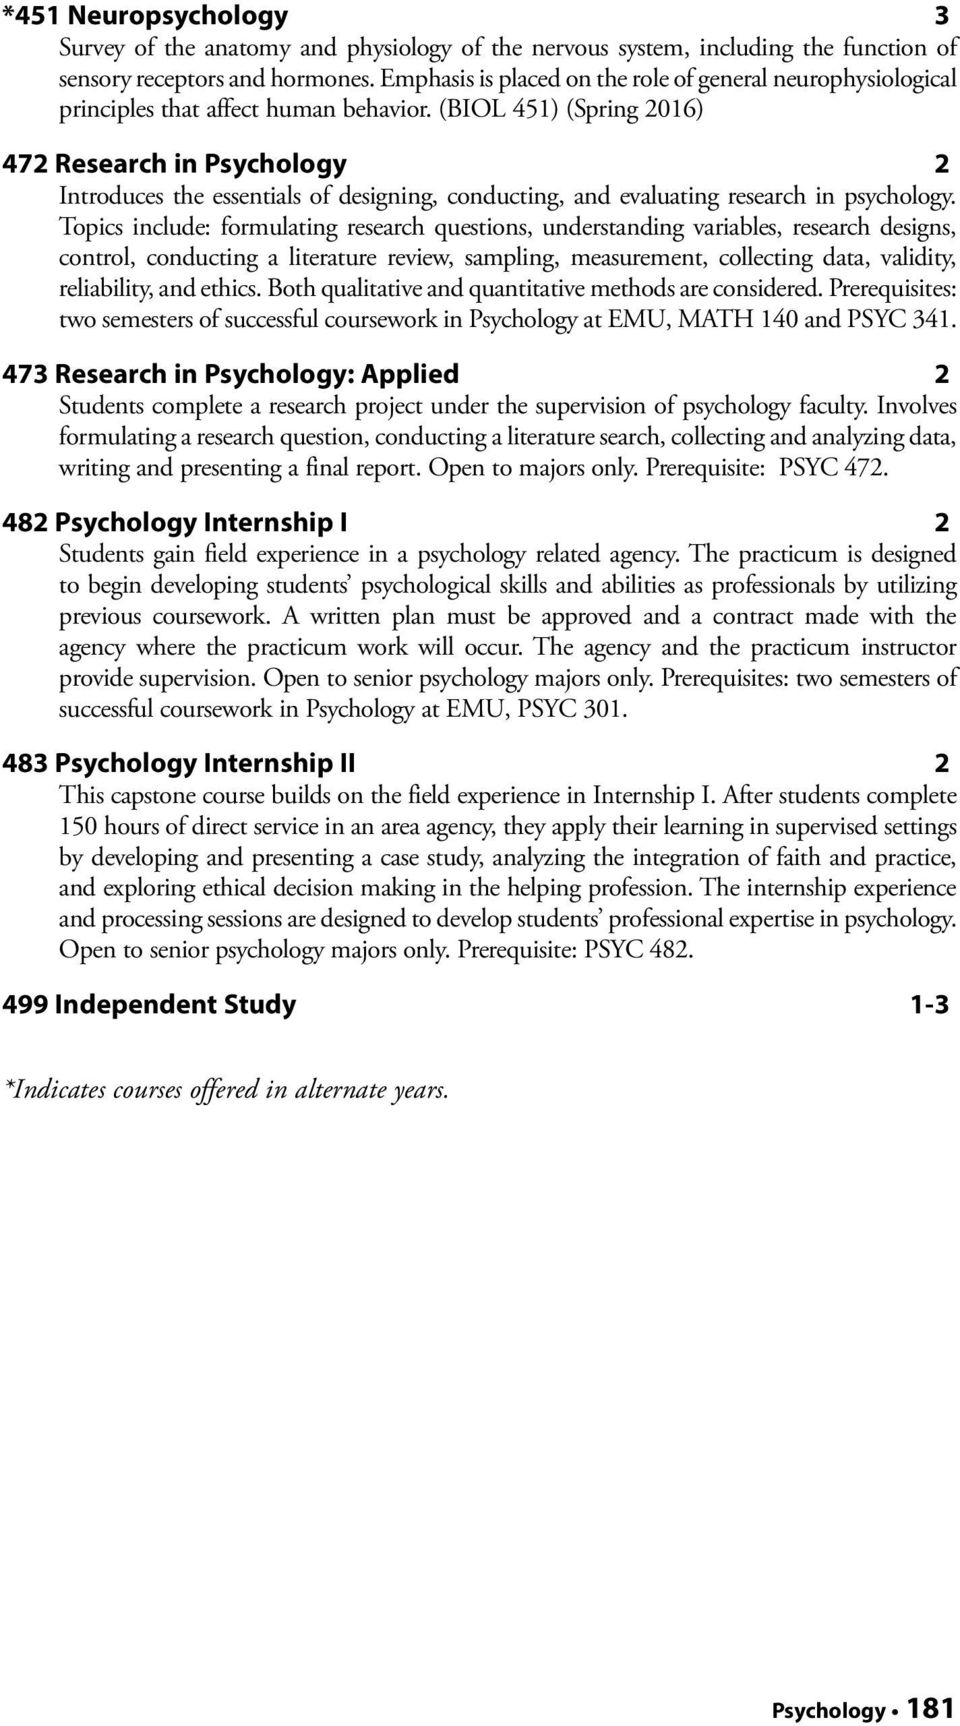 (BIOL 451) (Spring 2016) 472 Research in Psychology 2 Introduces the essentials of designing, conducting, and evaluating research in psychology.